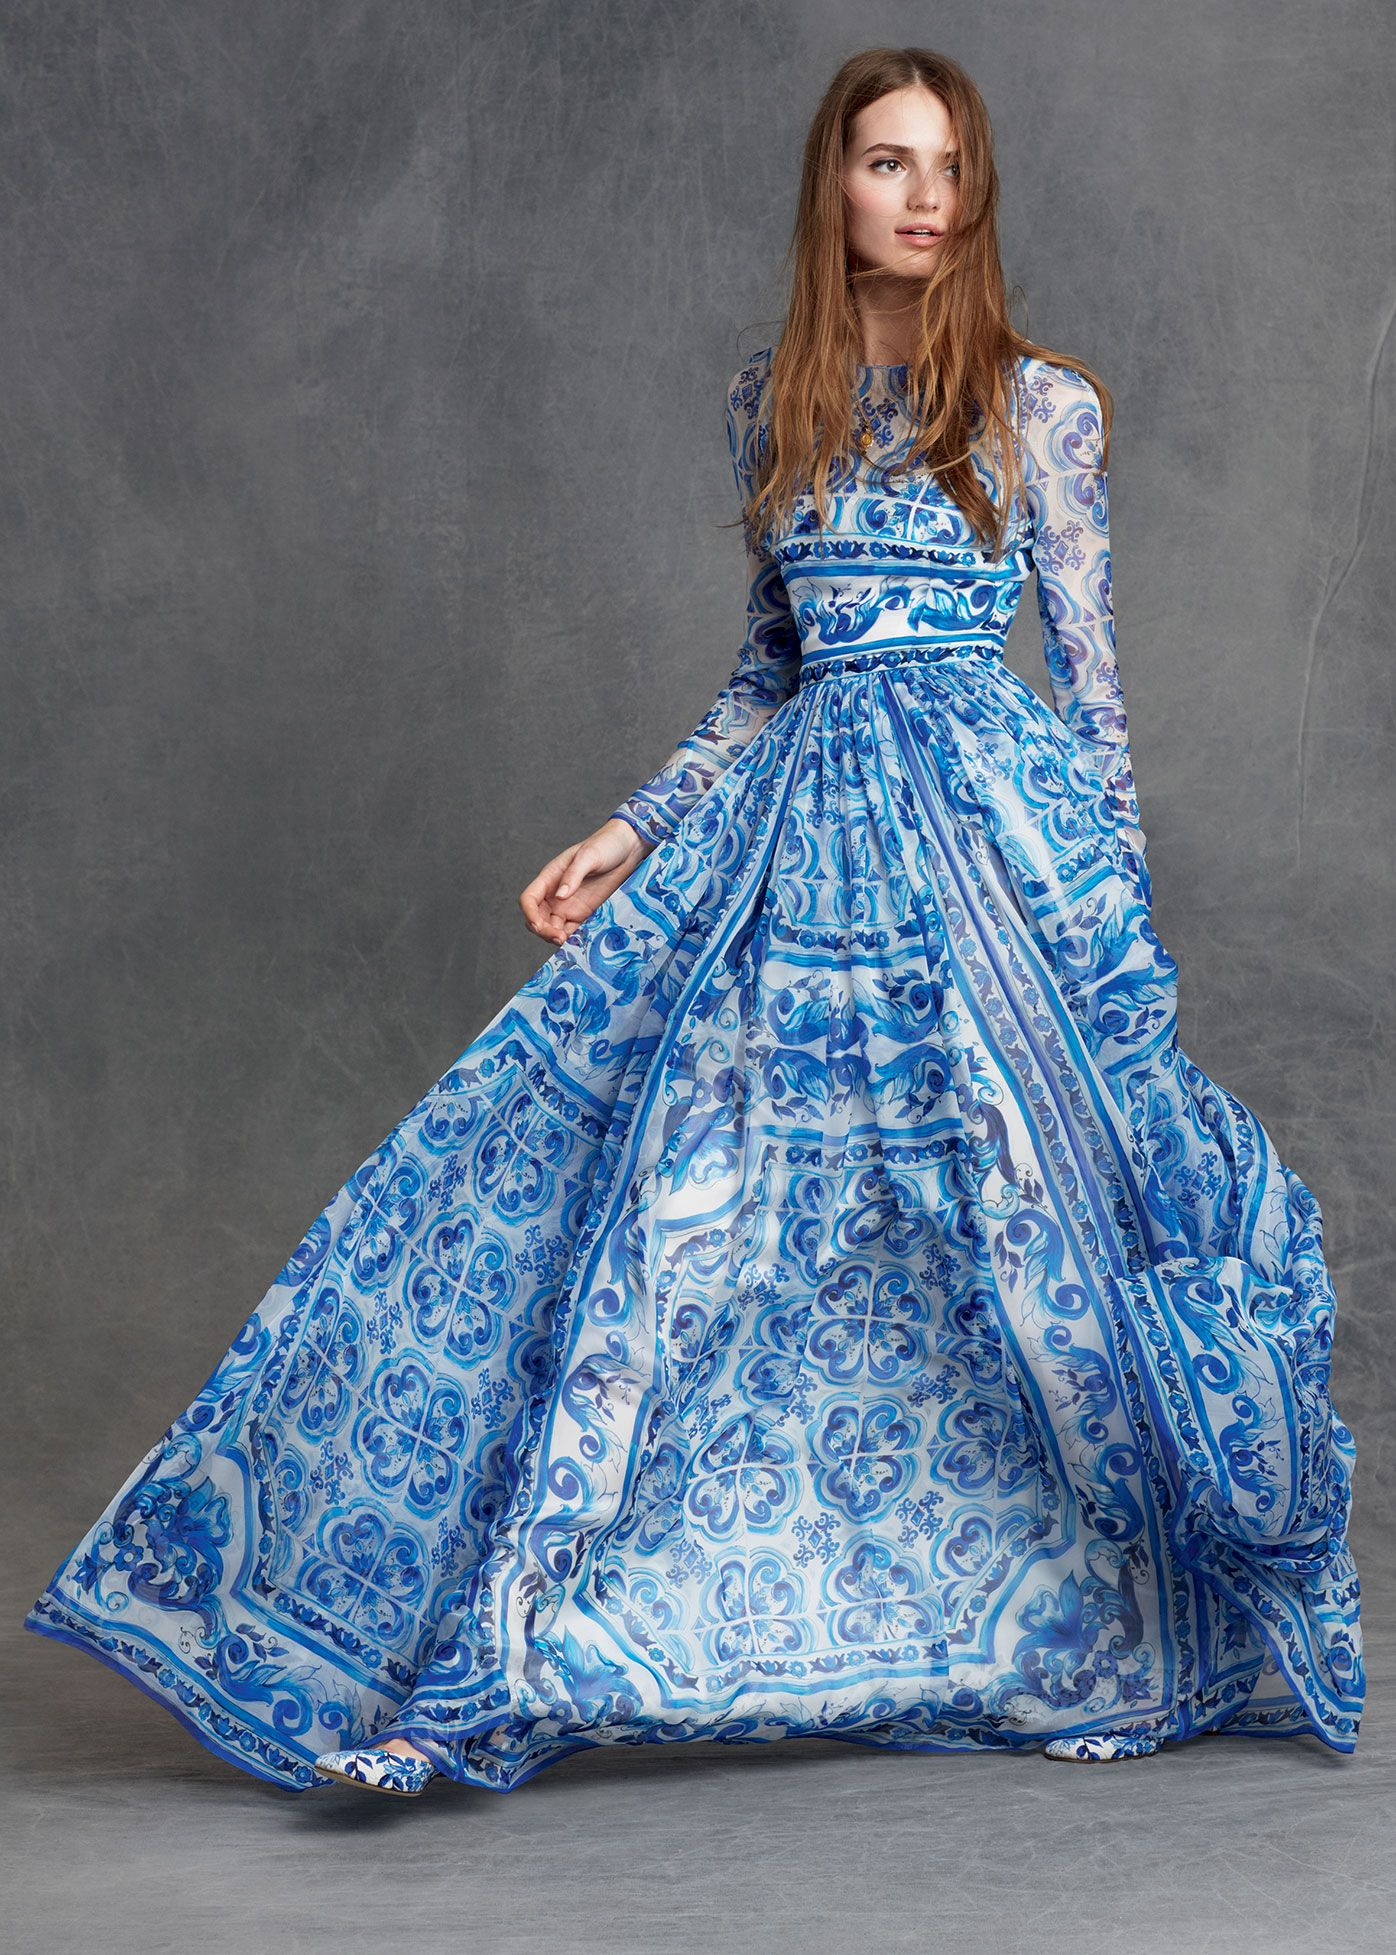 c581e6092d1 Dolce & Gabbana Women's Clothing Collection Winter 2016 Ball Gowns, Fall  2015, Backless